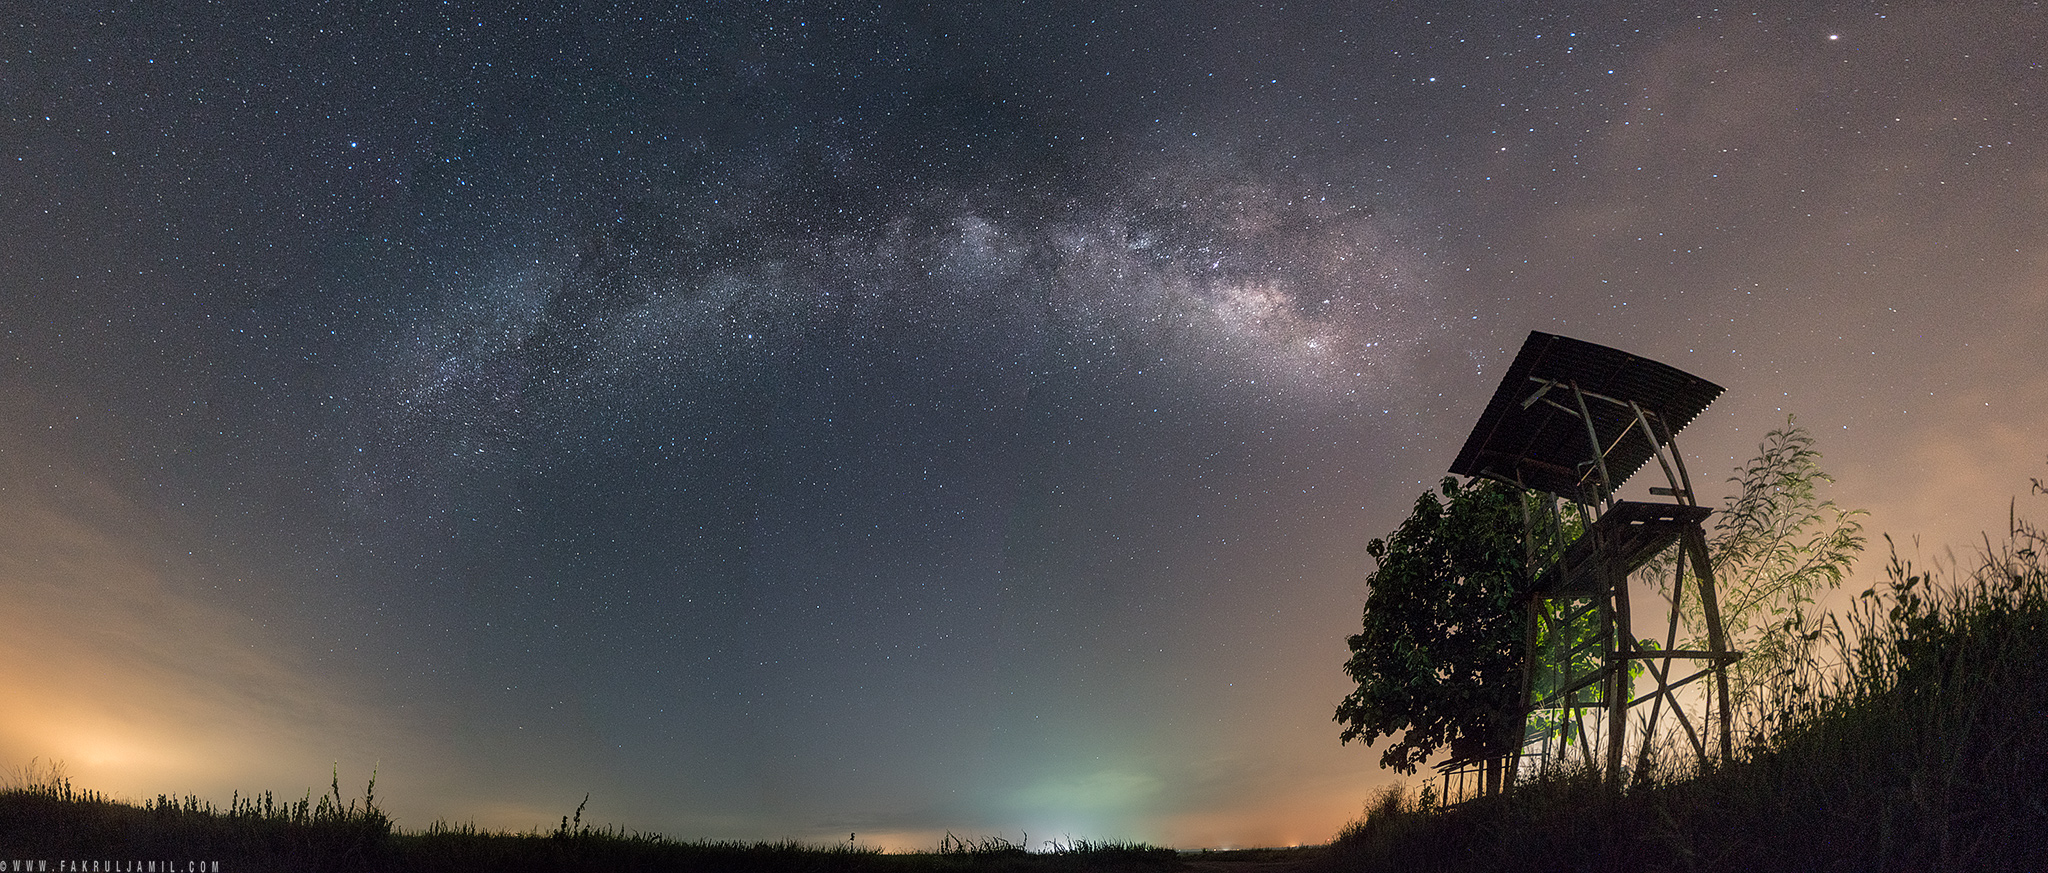 Panoramic of 7 vertical images to capture the full length of the Milky Way. | Sony A7R Mark II + FE 16-35mm F4 ZA OSS